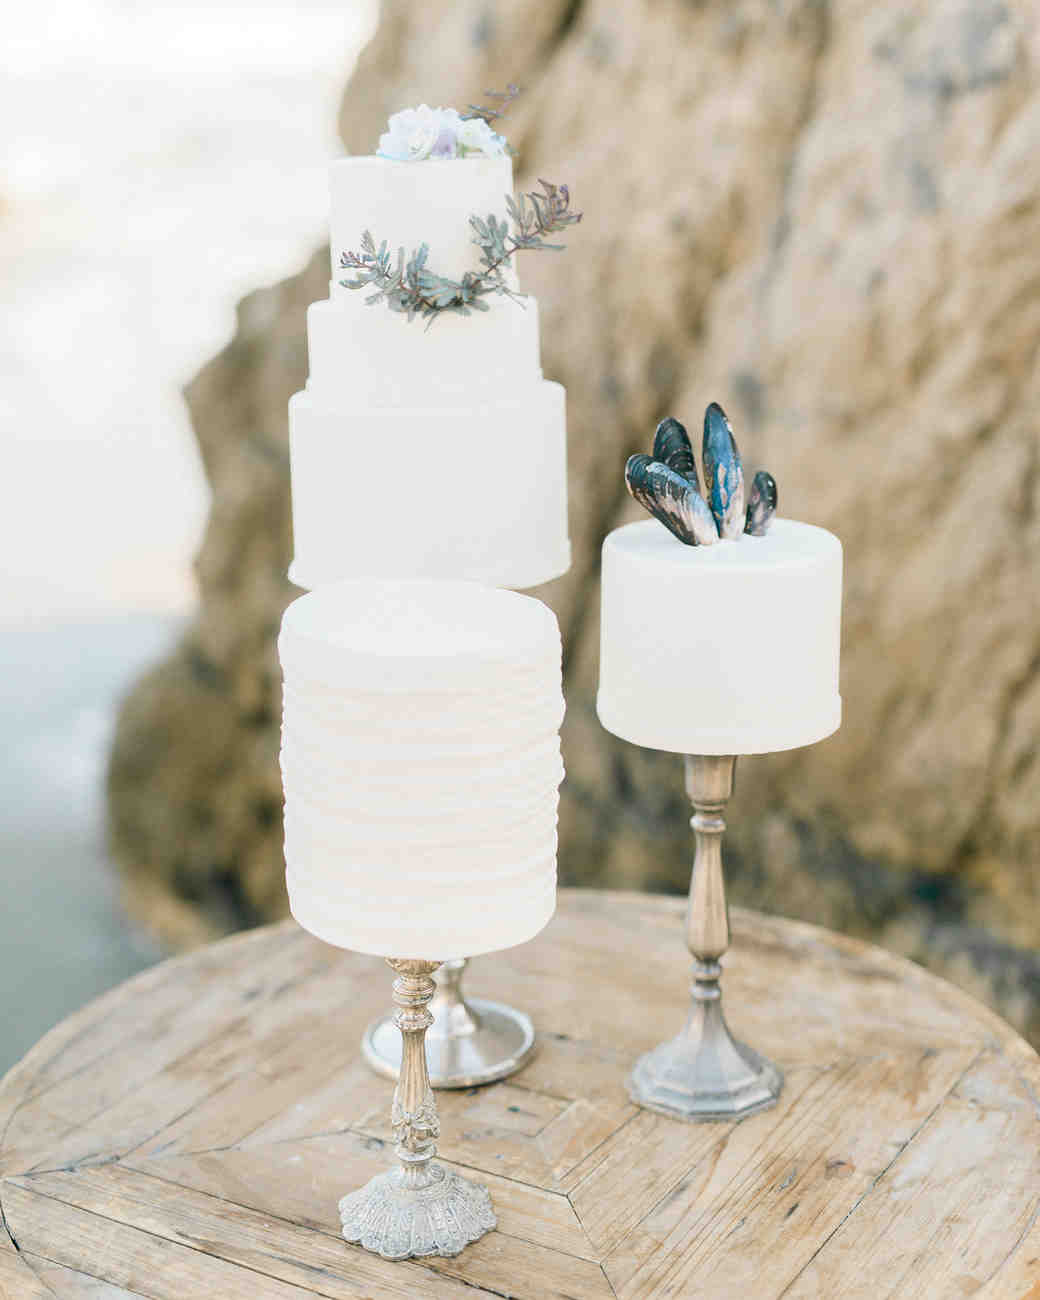 Trio of Wedding Cakes Decorated with Shells